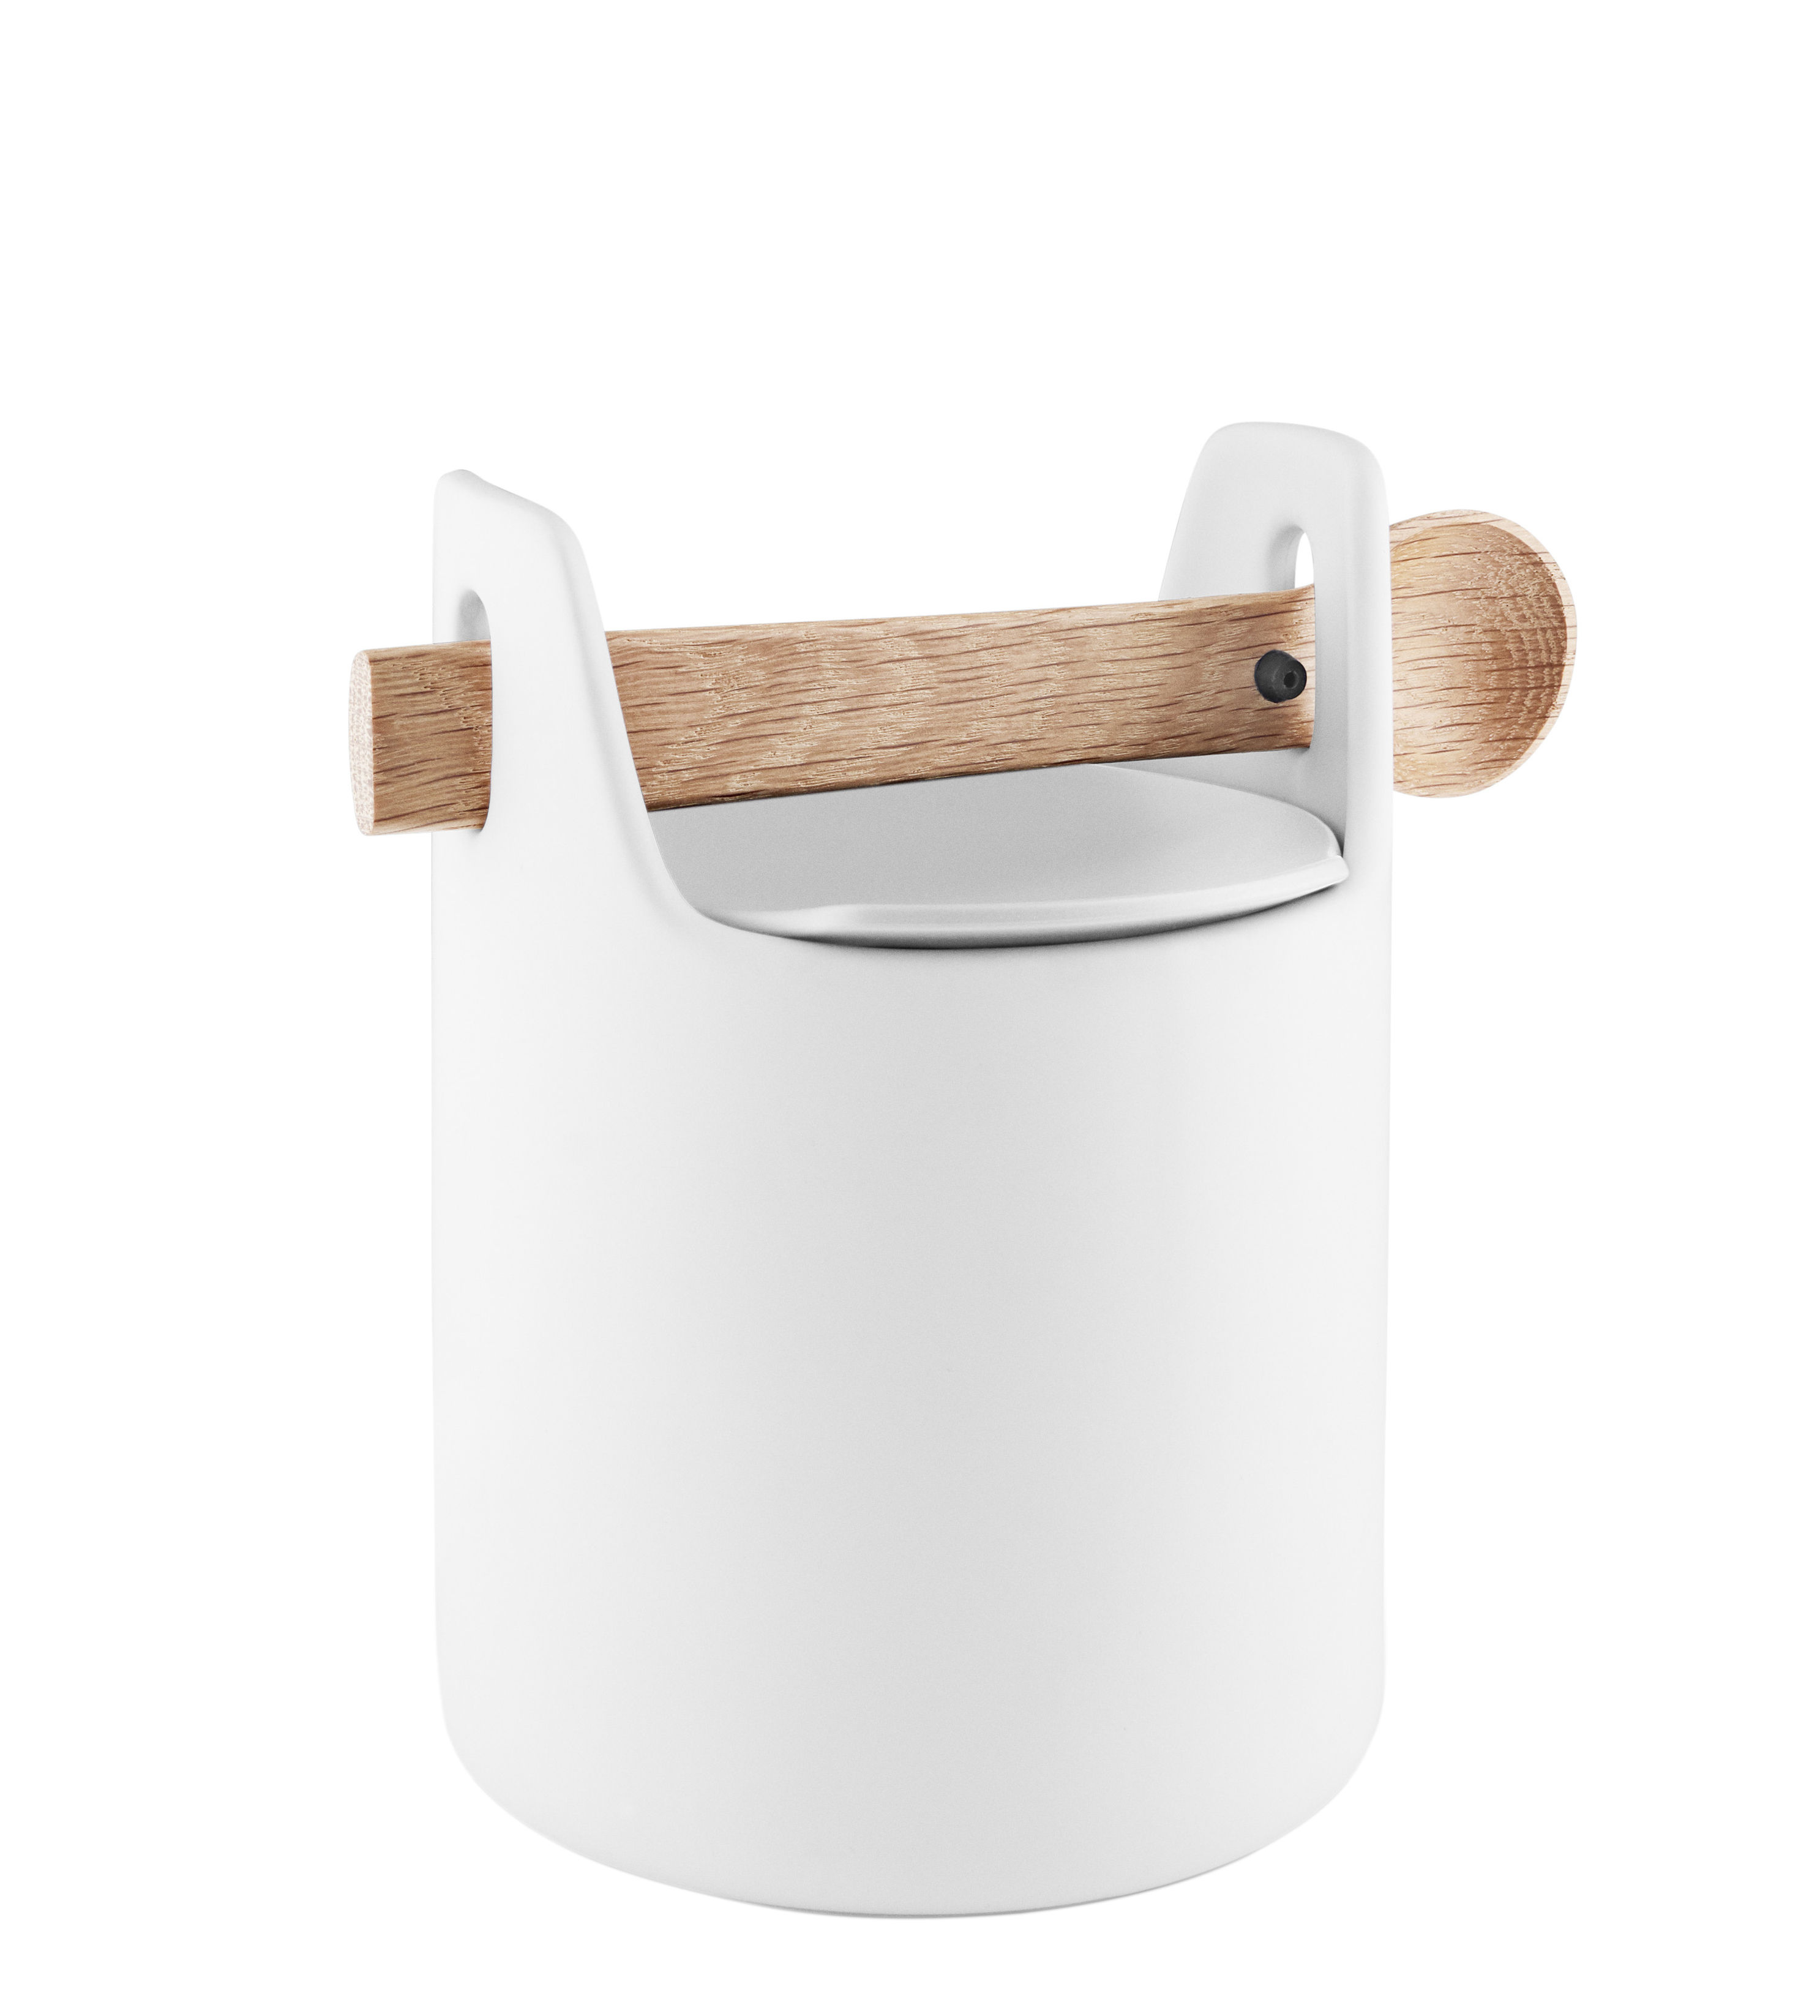 Kitchenware - Kitchen Storage Jars - Toolbox Small Airproof jar - / Wooden lid & spoon by Eva Solo - White / Oak - Ceramic, Silicone, Solid oak